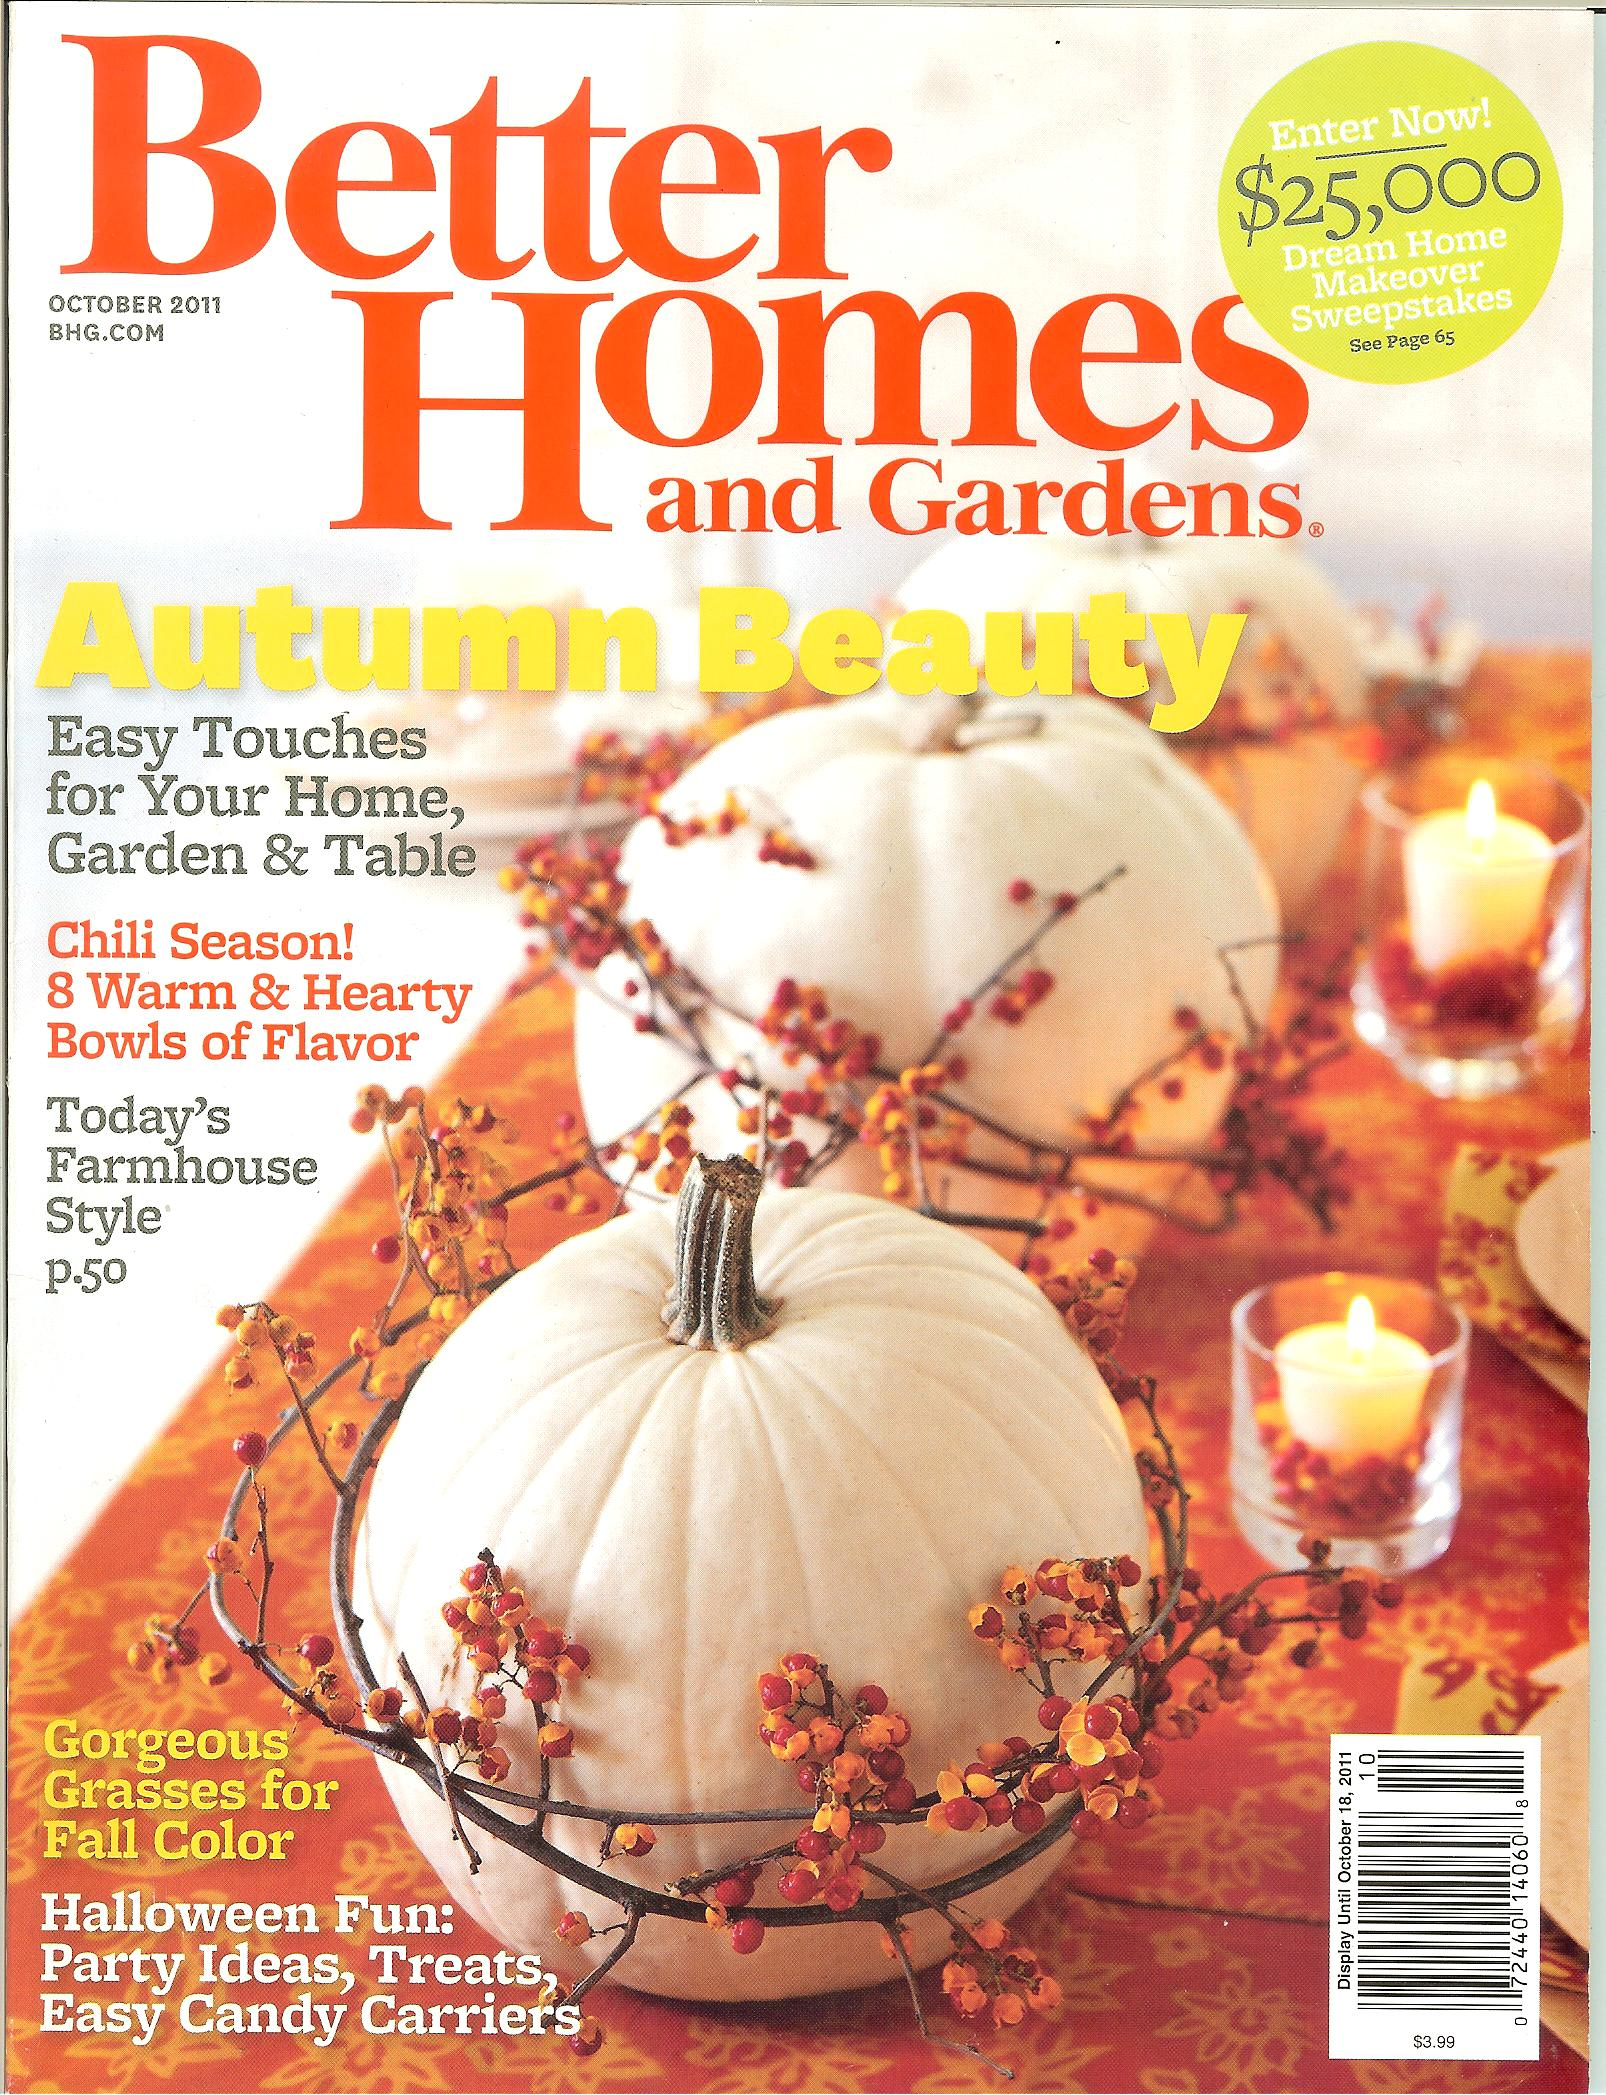 BH_G October 2011 Cover.jpg